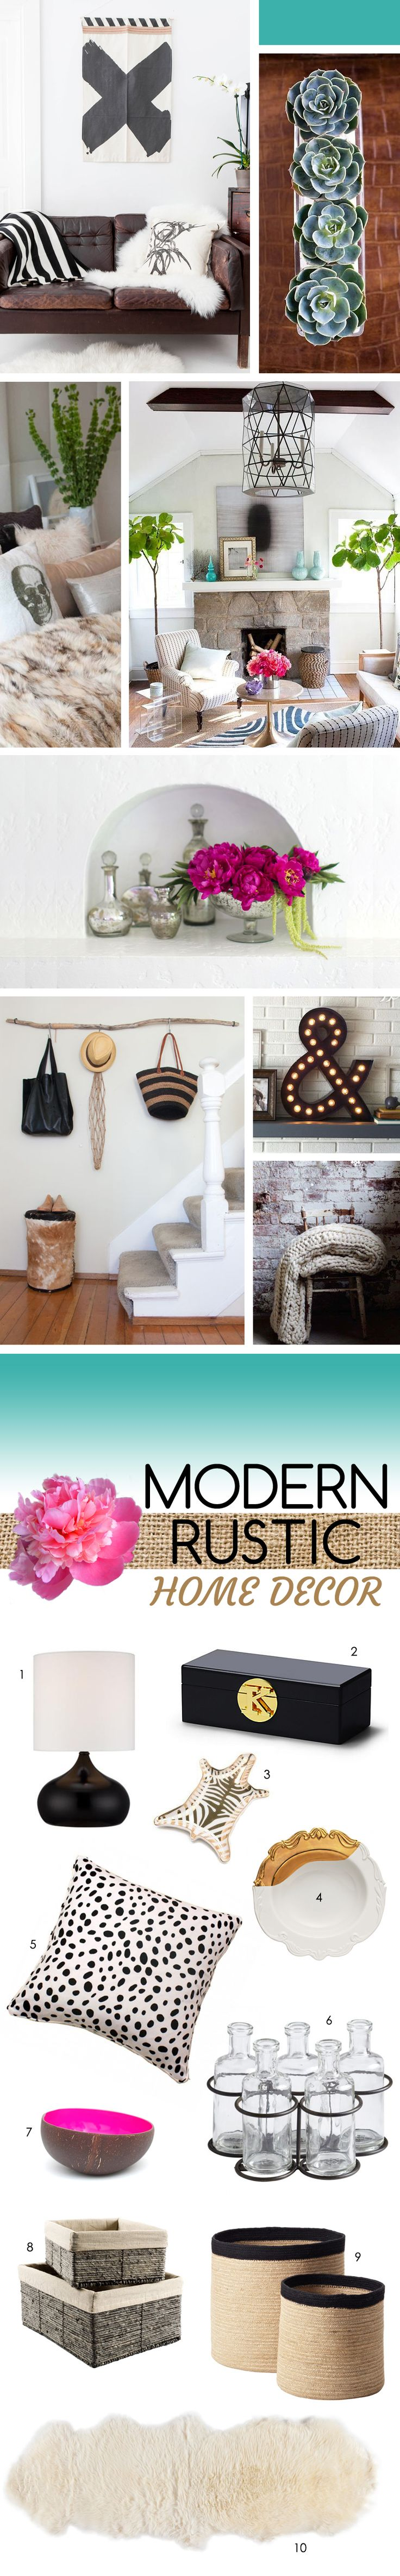 Modern Rustic Home Decor // Inspiration + Shopping